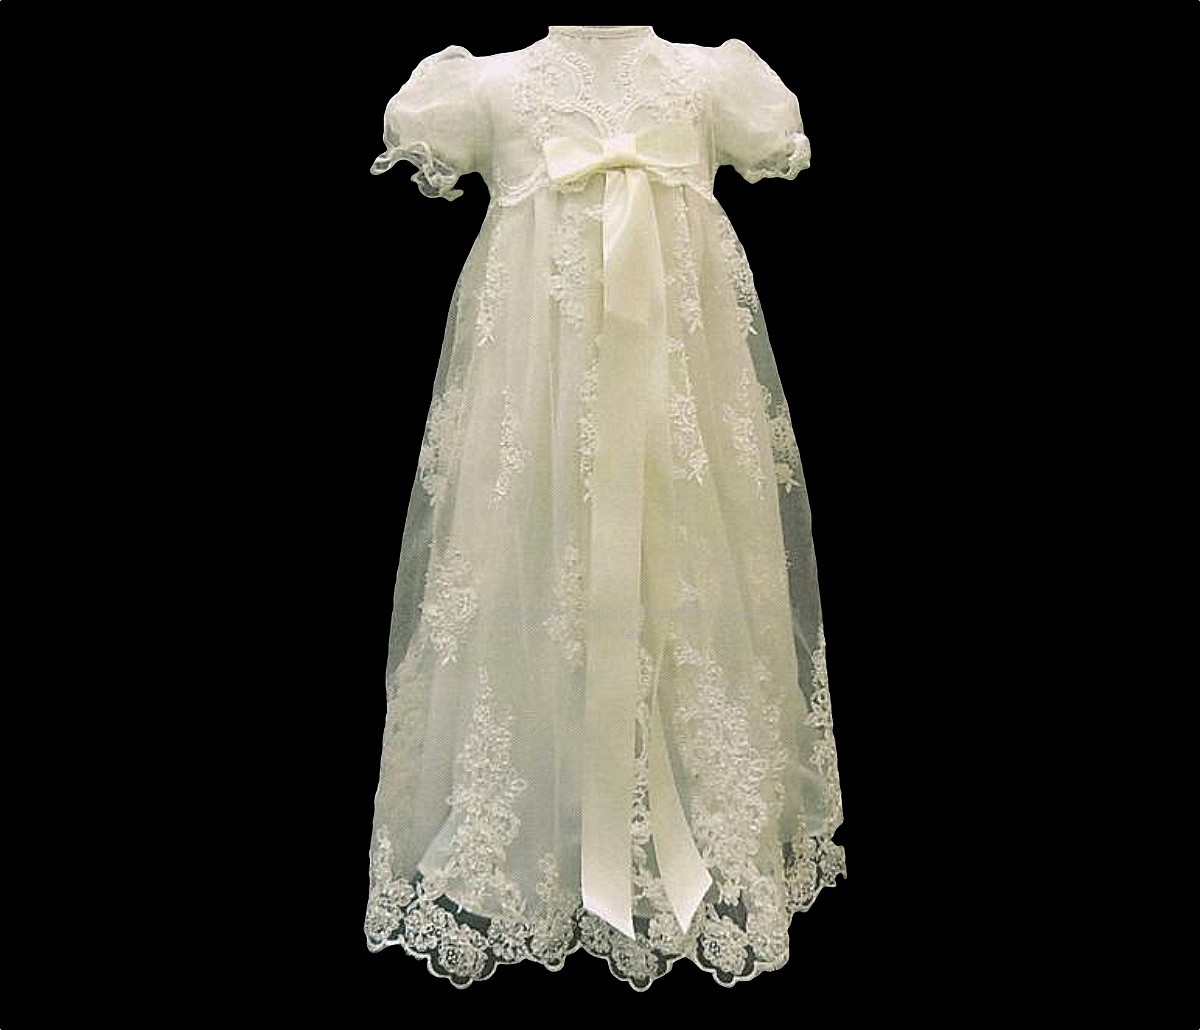 Lace Christening Dress New Girls Christening Gowns Girls Baptism Gowns Of Innovative 42 Images Lace Christening Dress